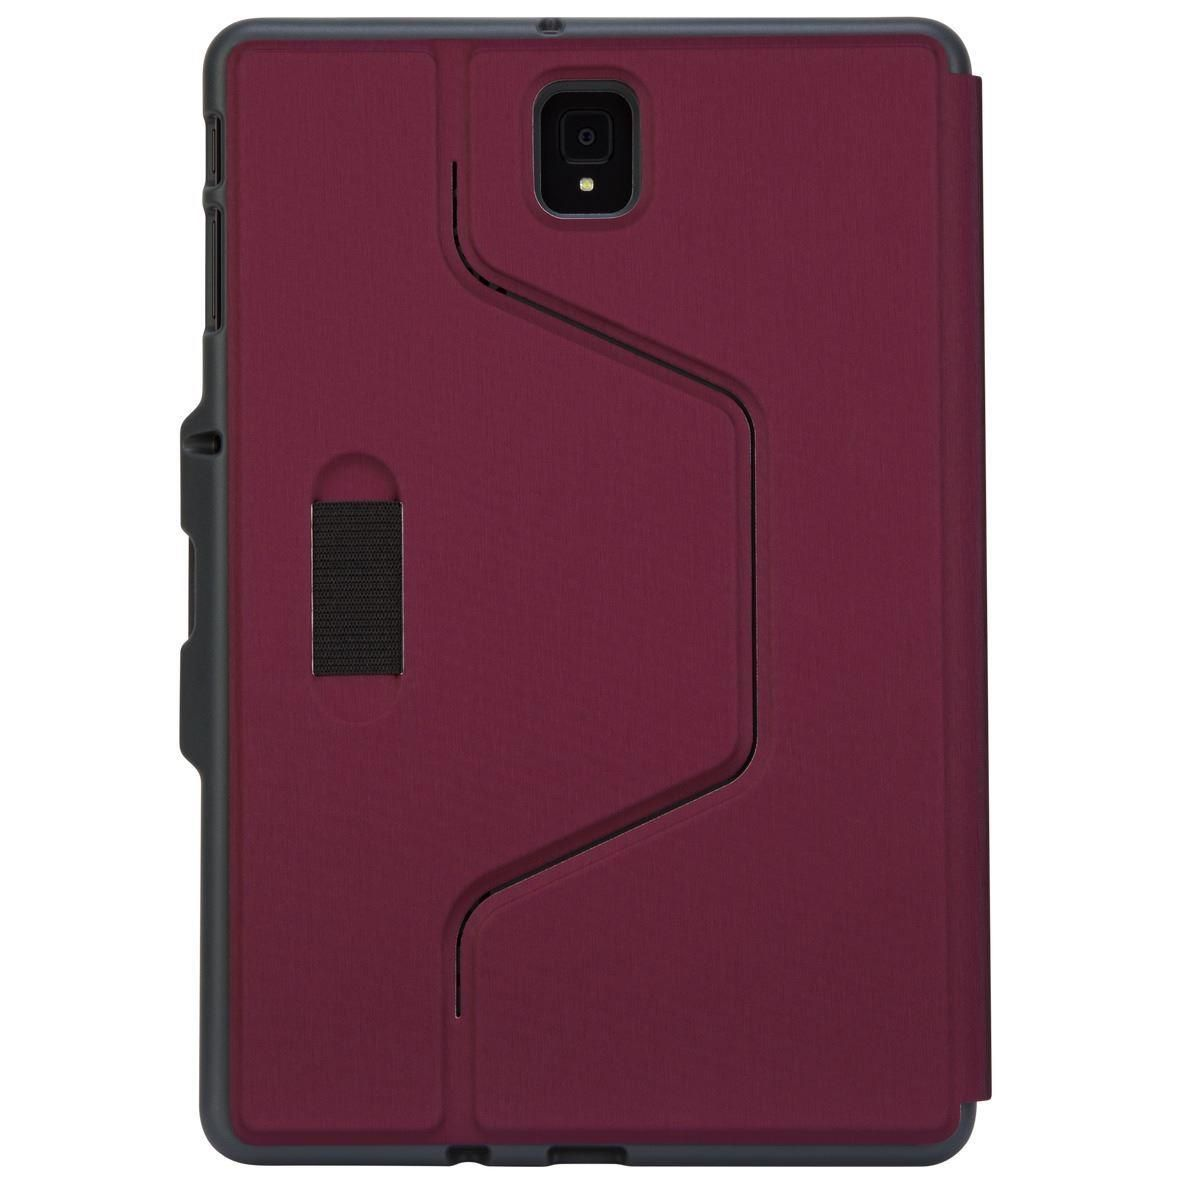 Targus Click-In Classic Case (Berry) for Samsung Galaxy Tab S4 (10.5 inch)